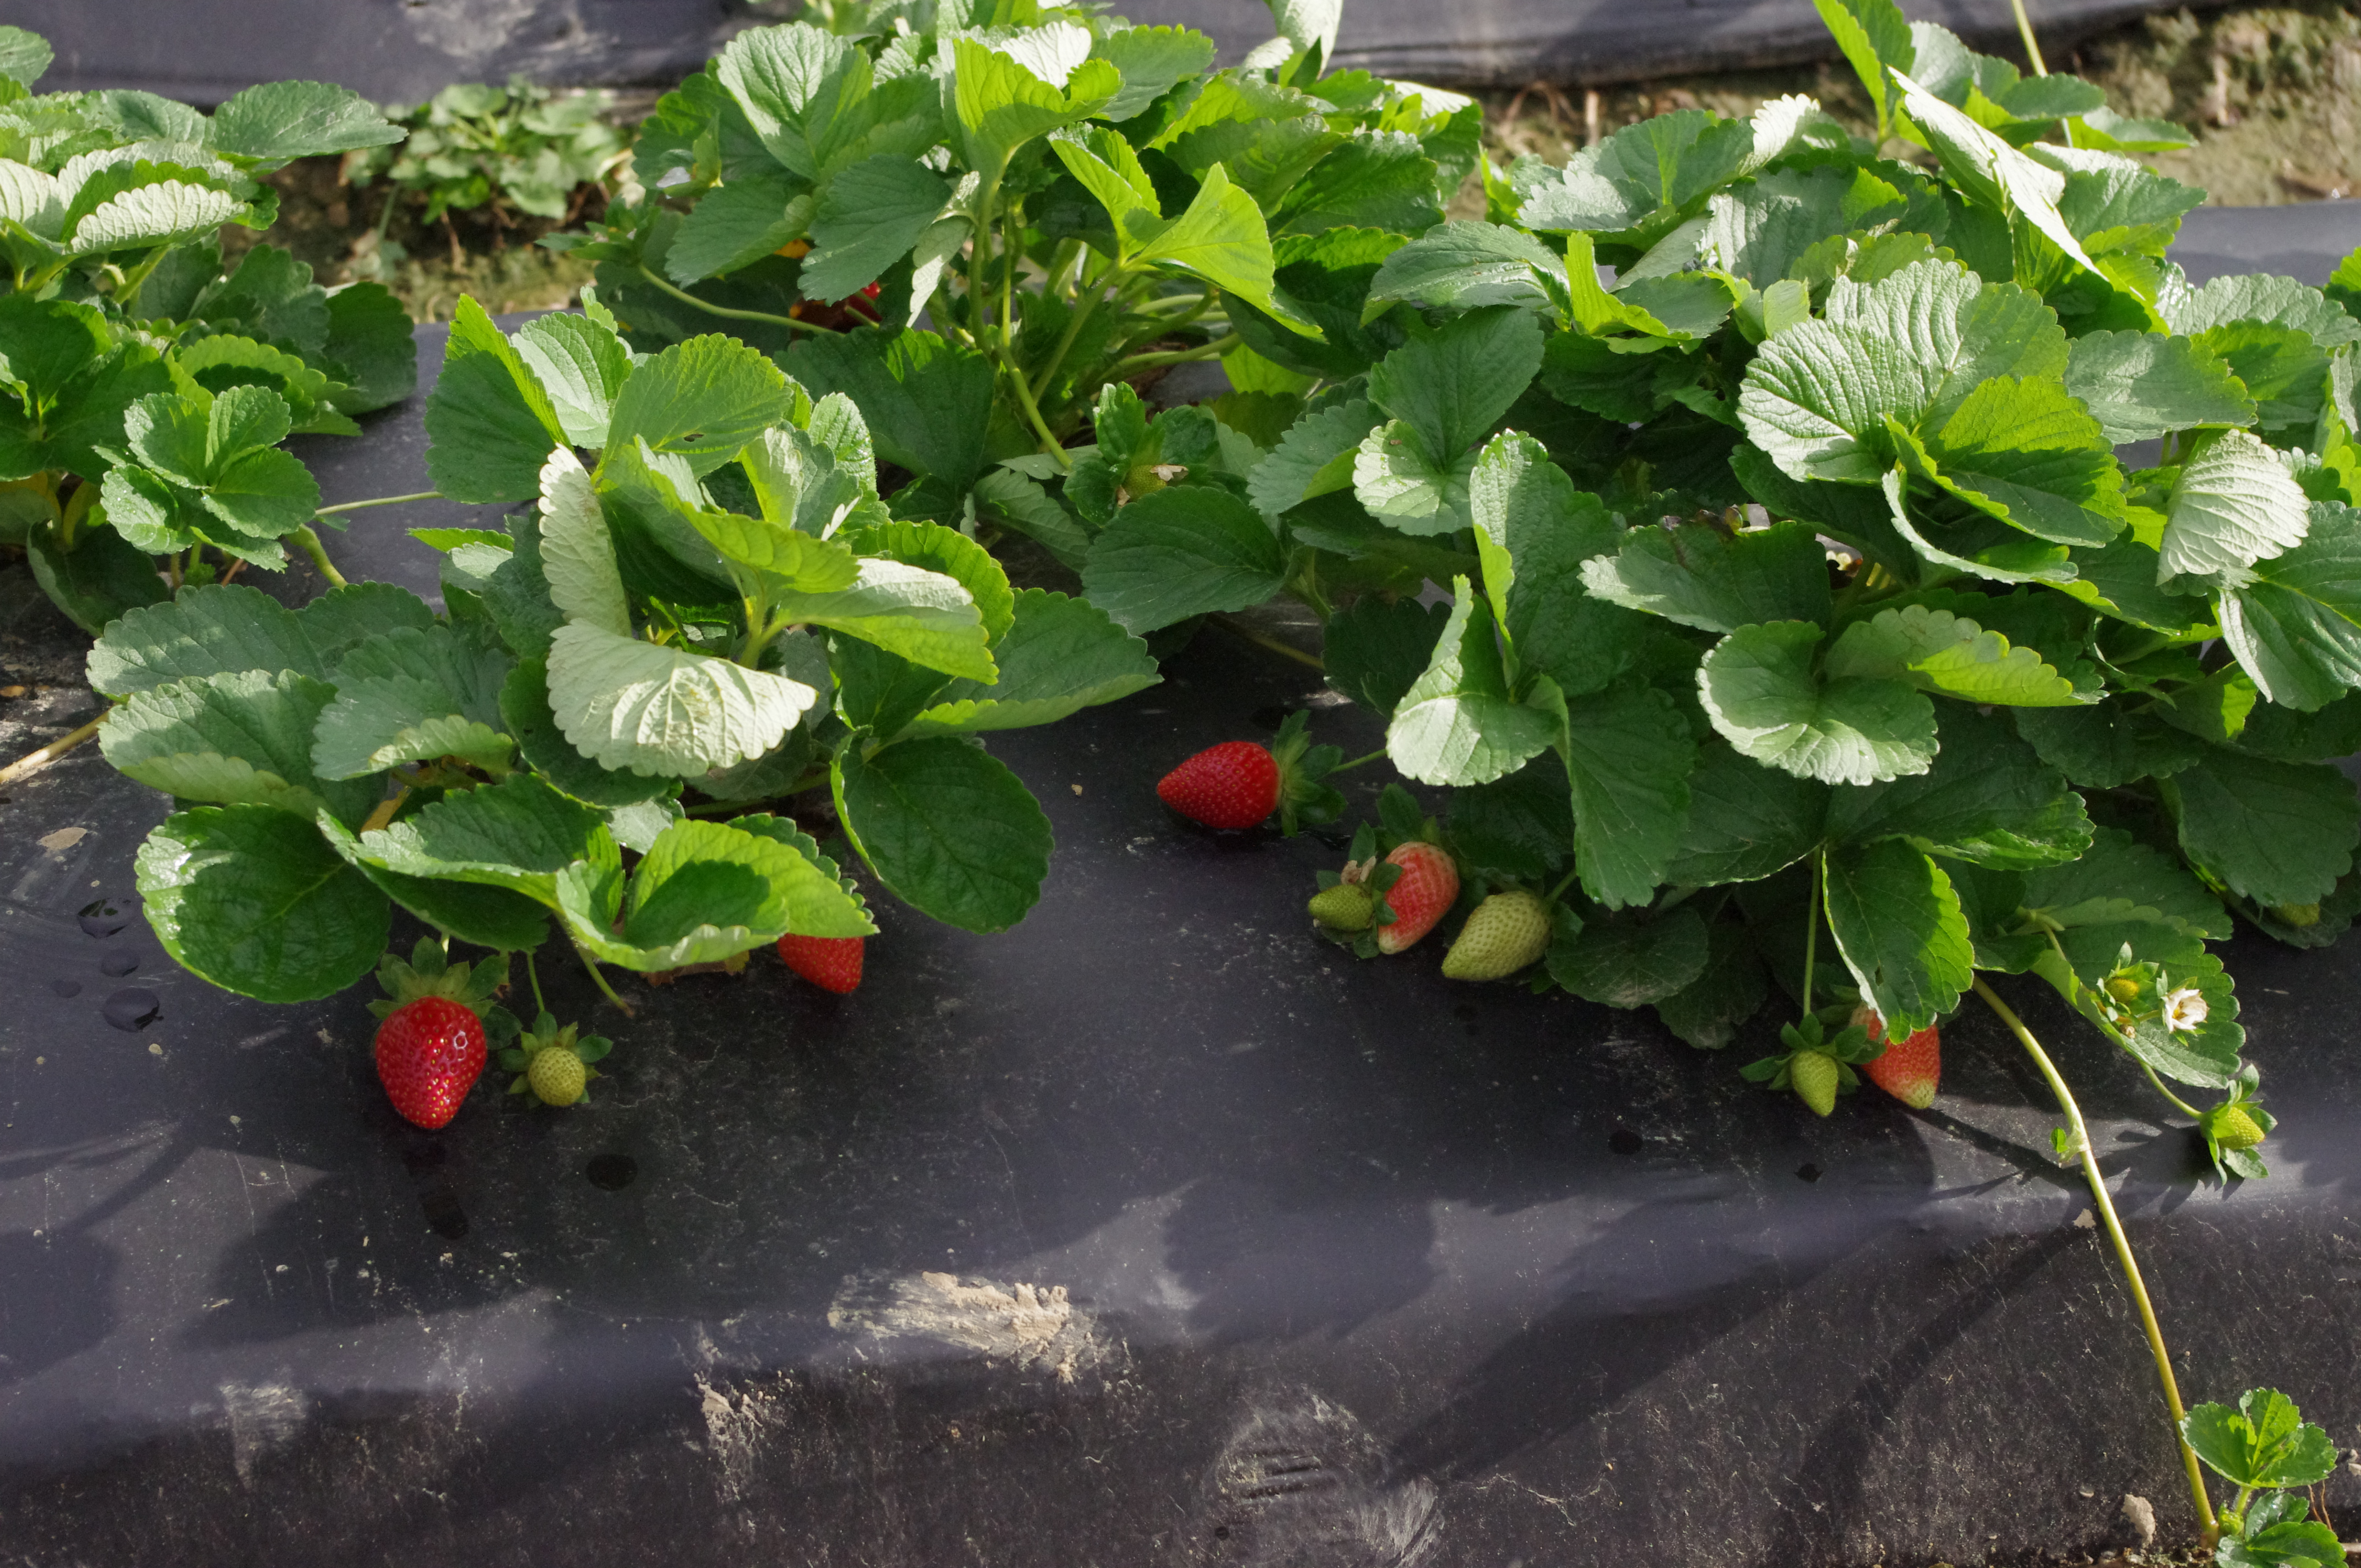 Successful home-grown strawberries need good weed control